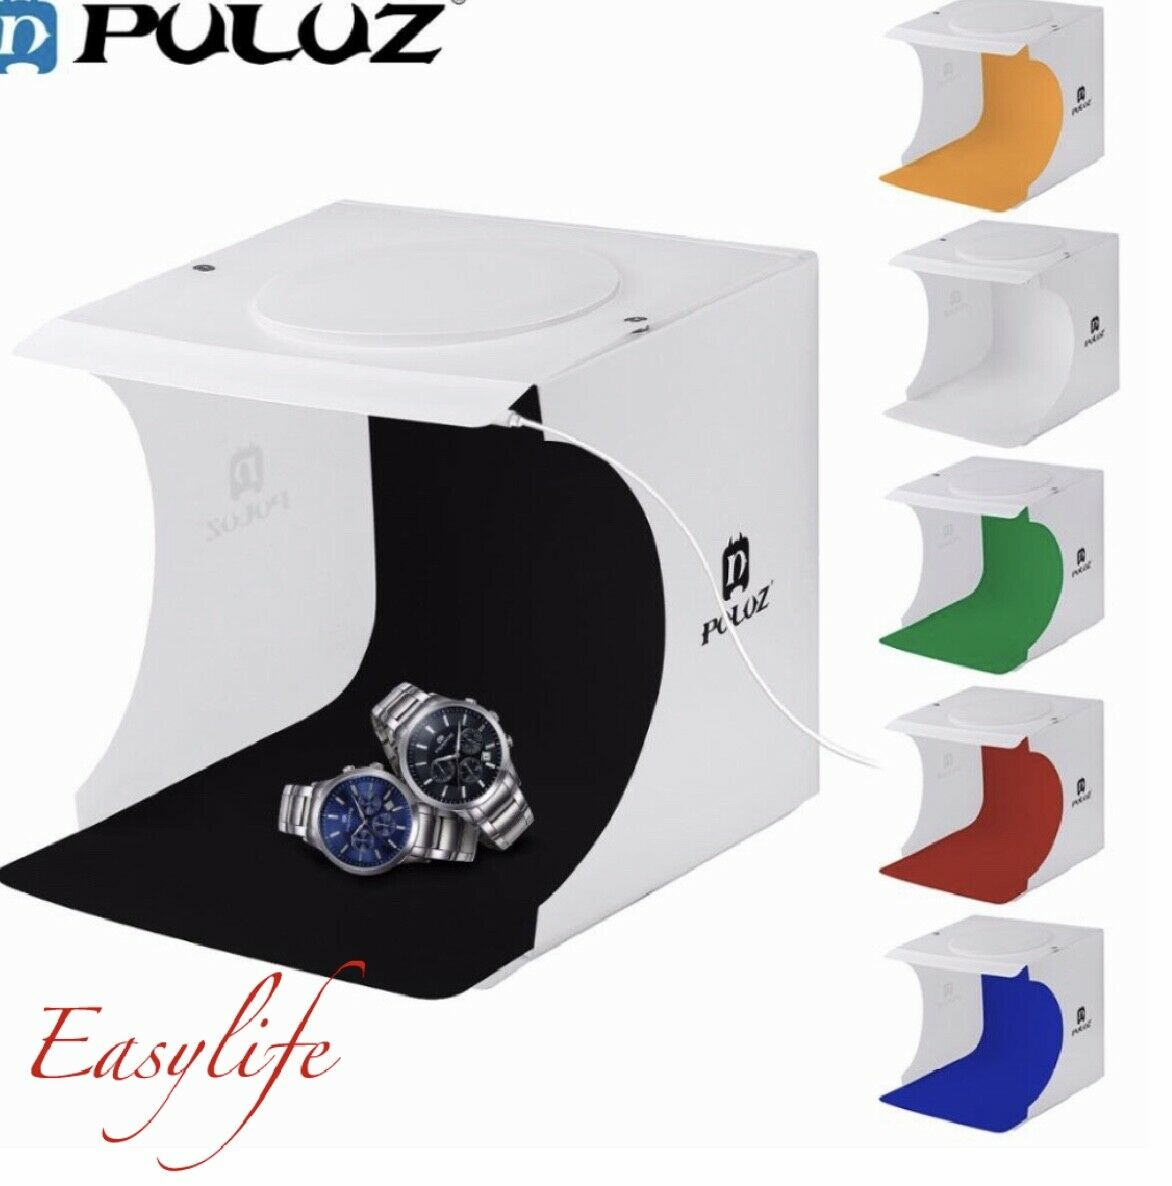 50 x 50cm Foldable Photo Studio Shooting Tent Light Diffusion Soft Box Softbox with 4 Colors Backdrops for Photography